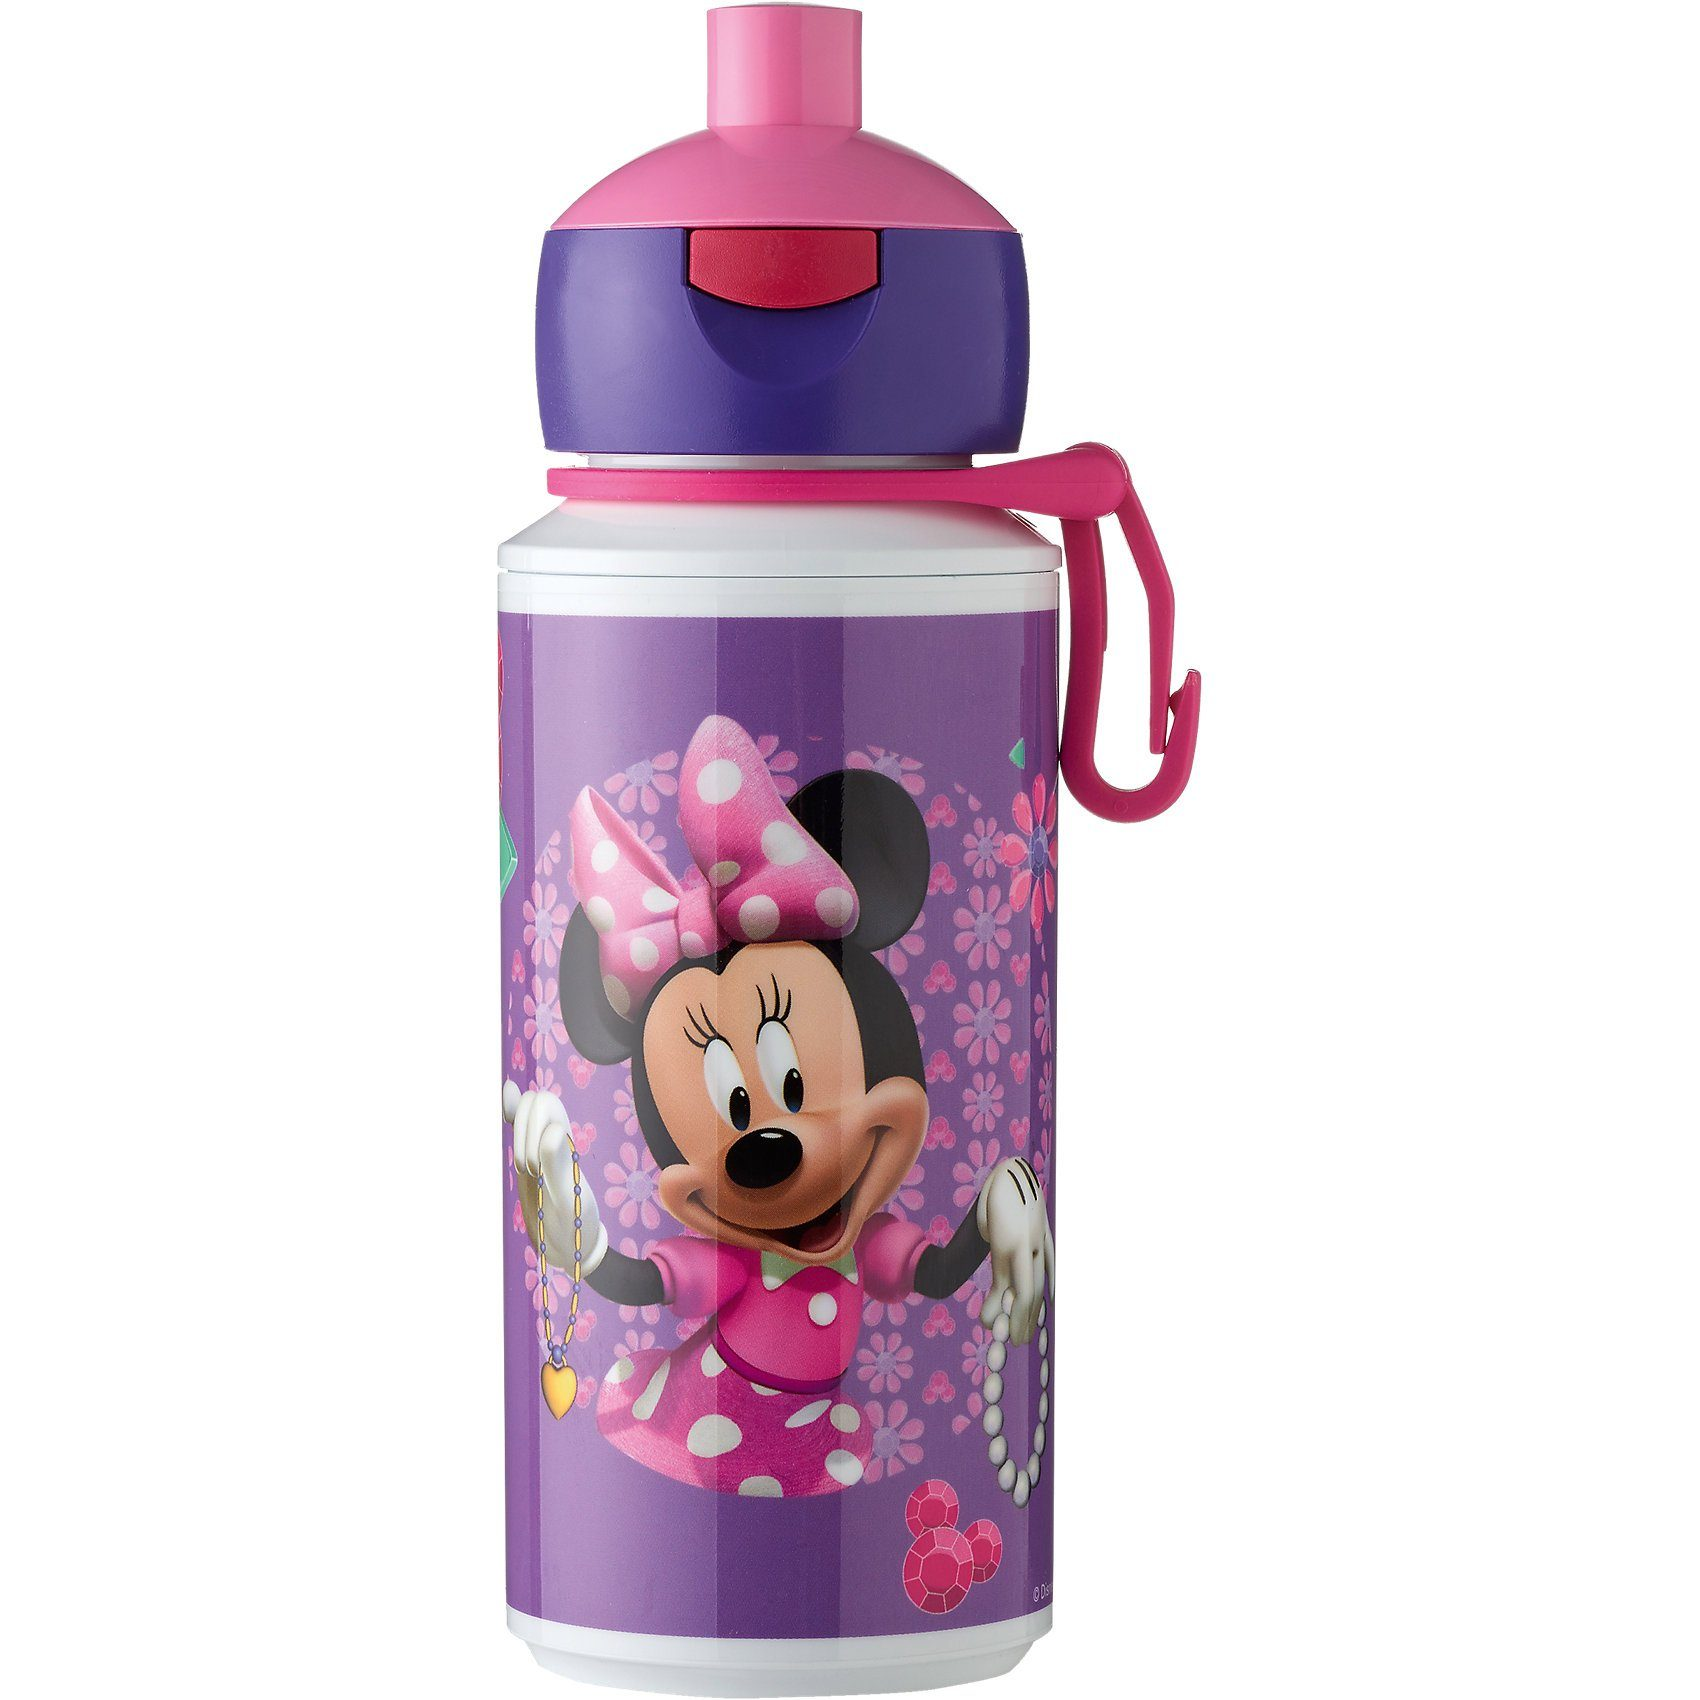 Rosti Mepal Trinkflasche Campus pop-up Minnie Mouse, 275 ml